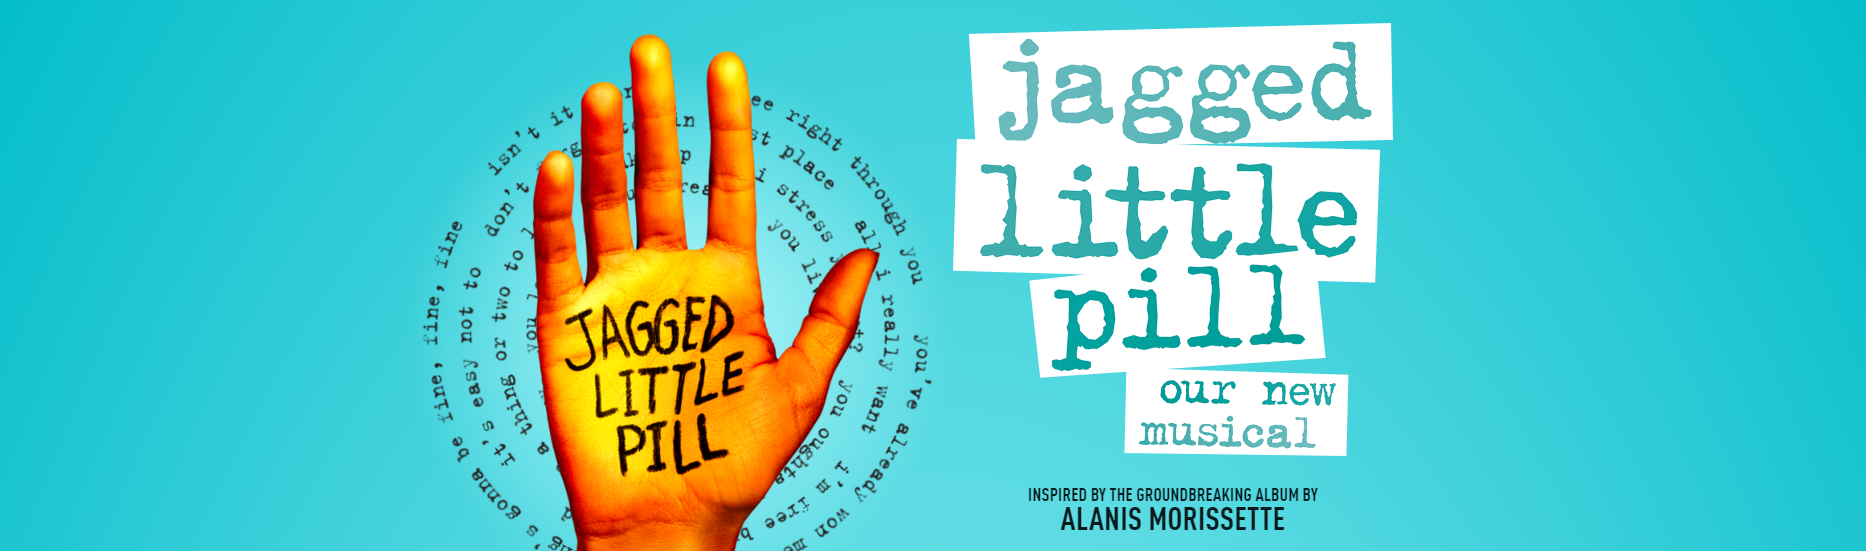 Jagged Little Pill is written on the palm of a hand. Lyrics to Alanis Morissette songs are in 4 circles behind the hand in typeface.